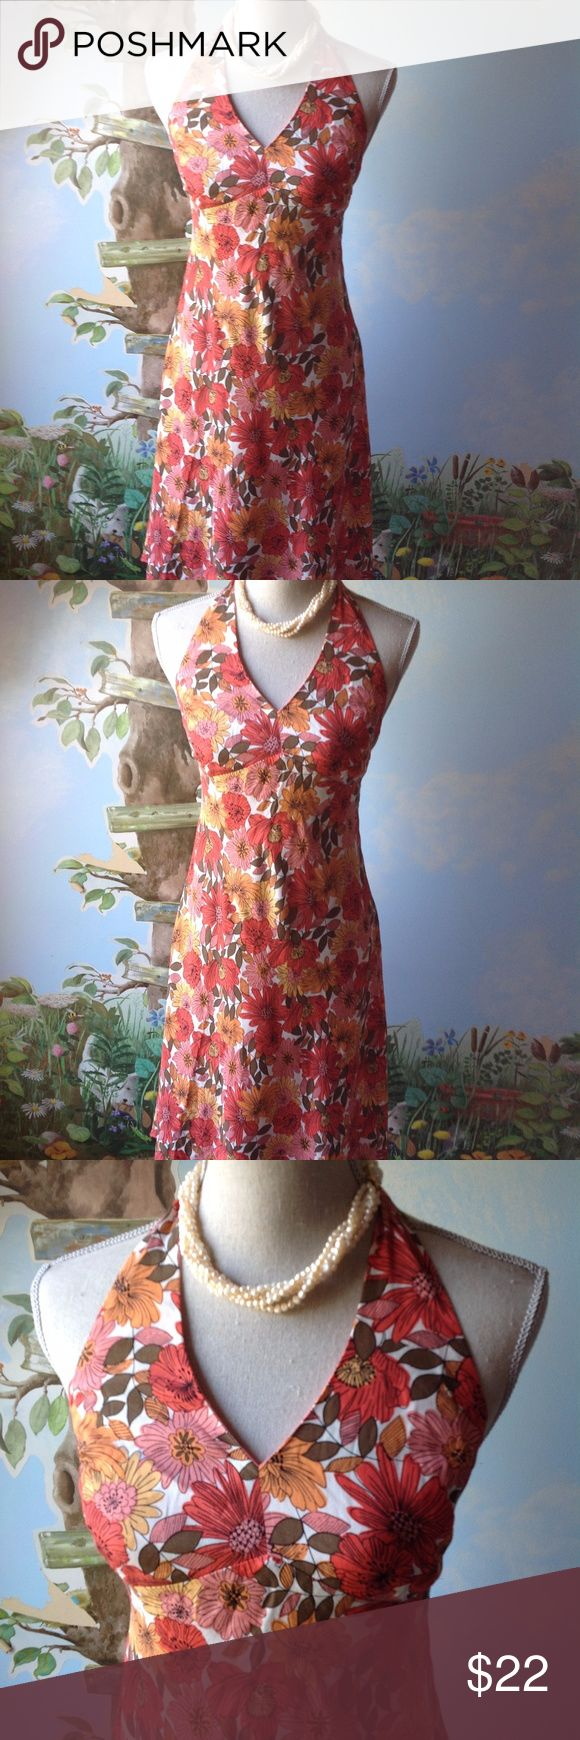 "Ann Taylor Loft Petite Women Dress Floral Size 6P Ann Taylor Loft Petite Dress Women Sheath Halter Orange Floral  Dress Size 6P  Pre-owned in good used condition  o The Dress is Fully Lined, Halter, Back Zipper.    Color: Orange Floral.   Measurements   o Approx. length of the dress: 40""  o Approx. Around the bust: 32""  o Approx. Around the waist: 30""  o Approx. Around the hip: 40""  100% Rayon Ann Taylor Loft Dresses"